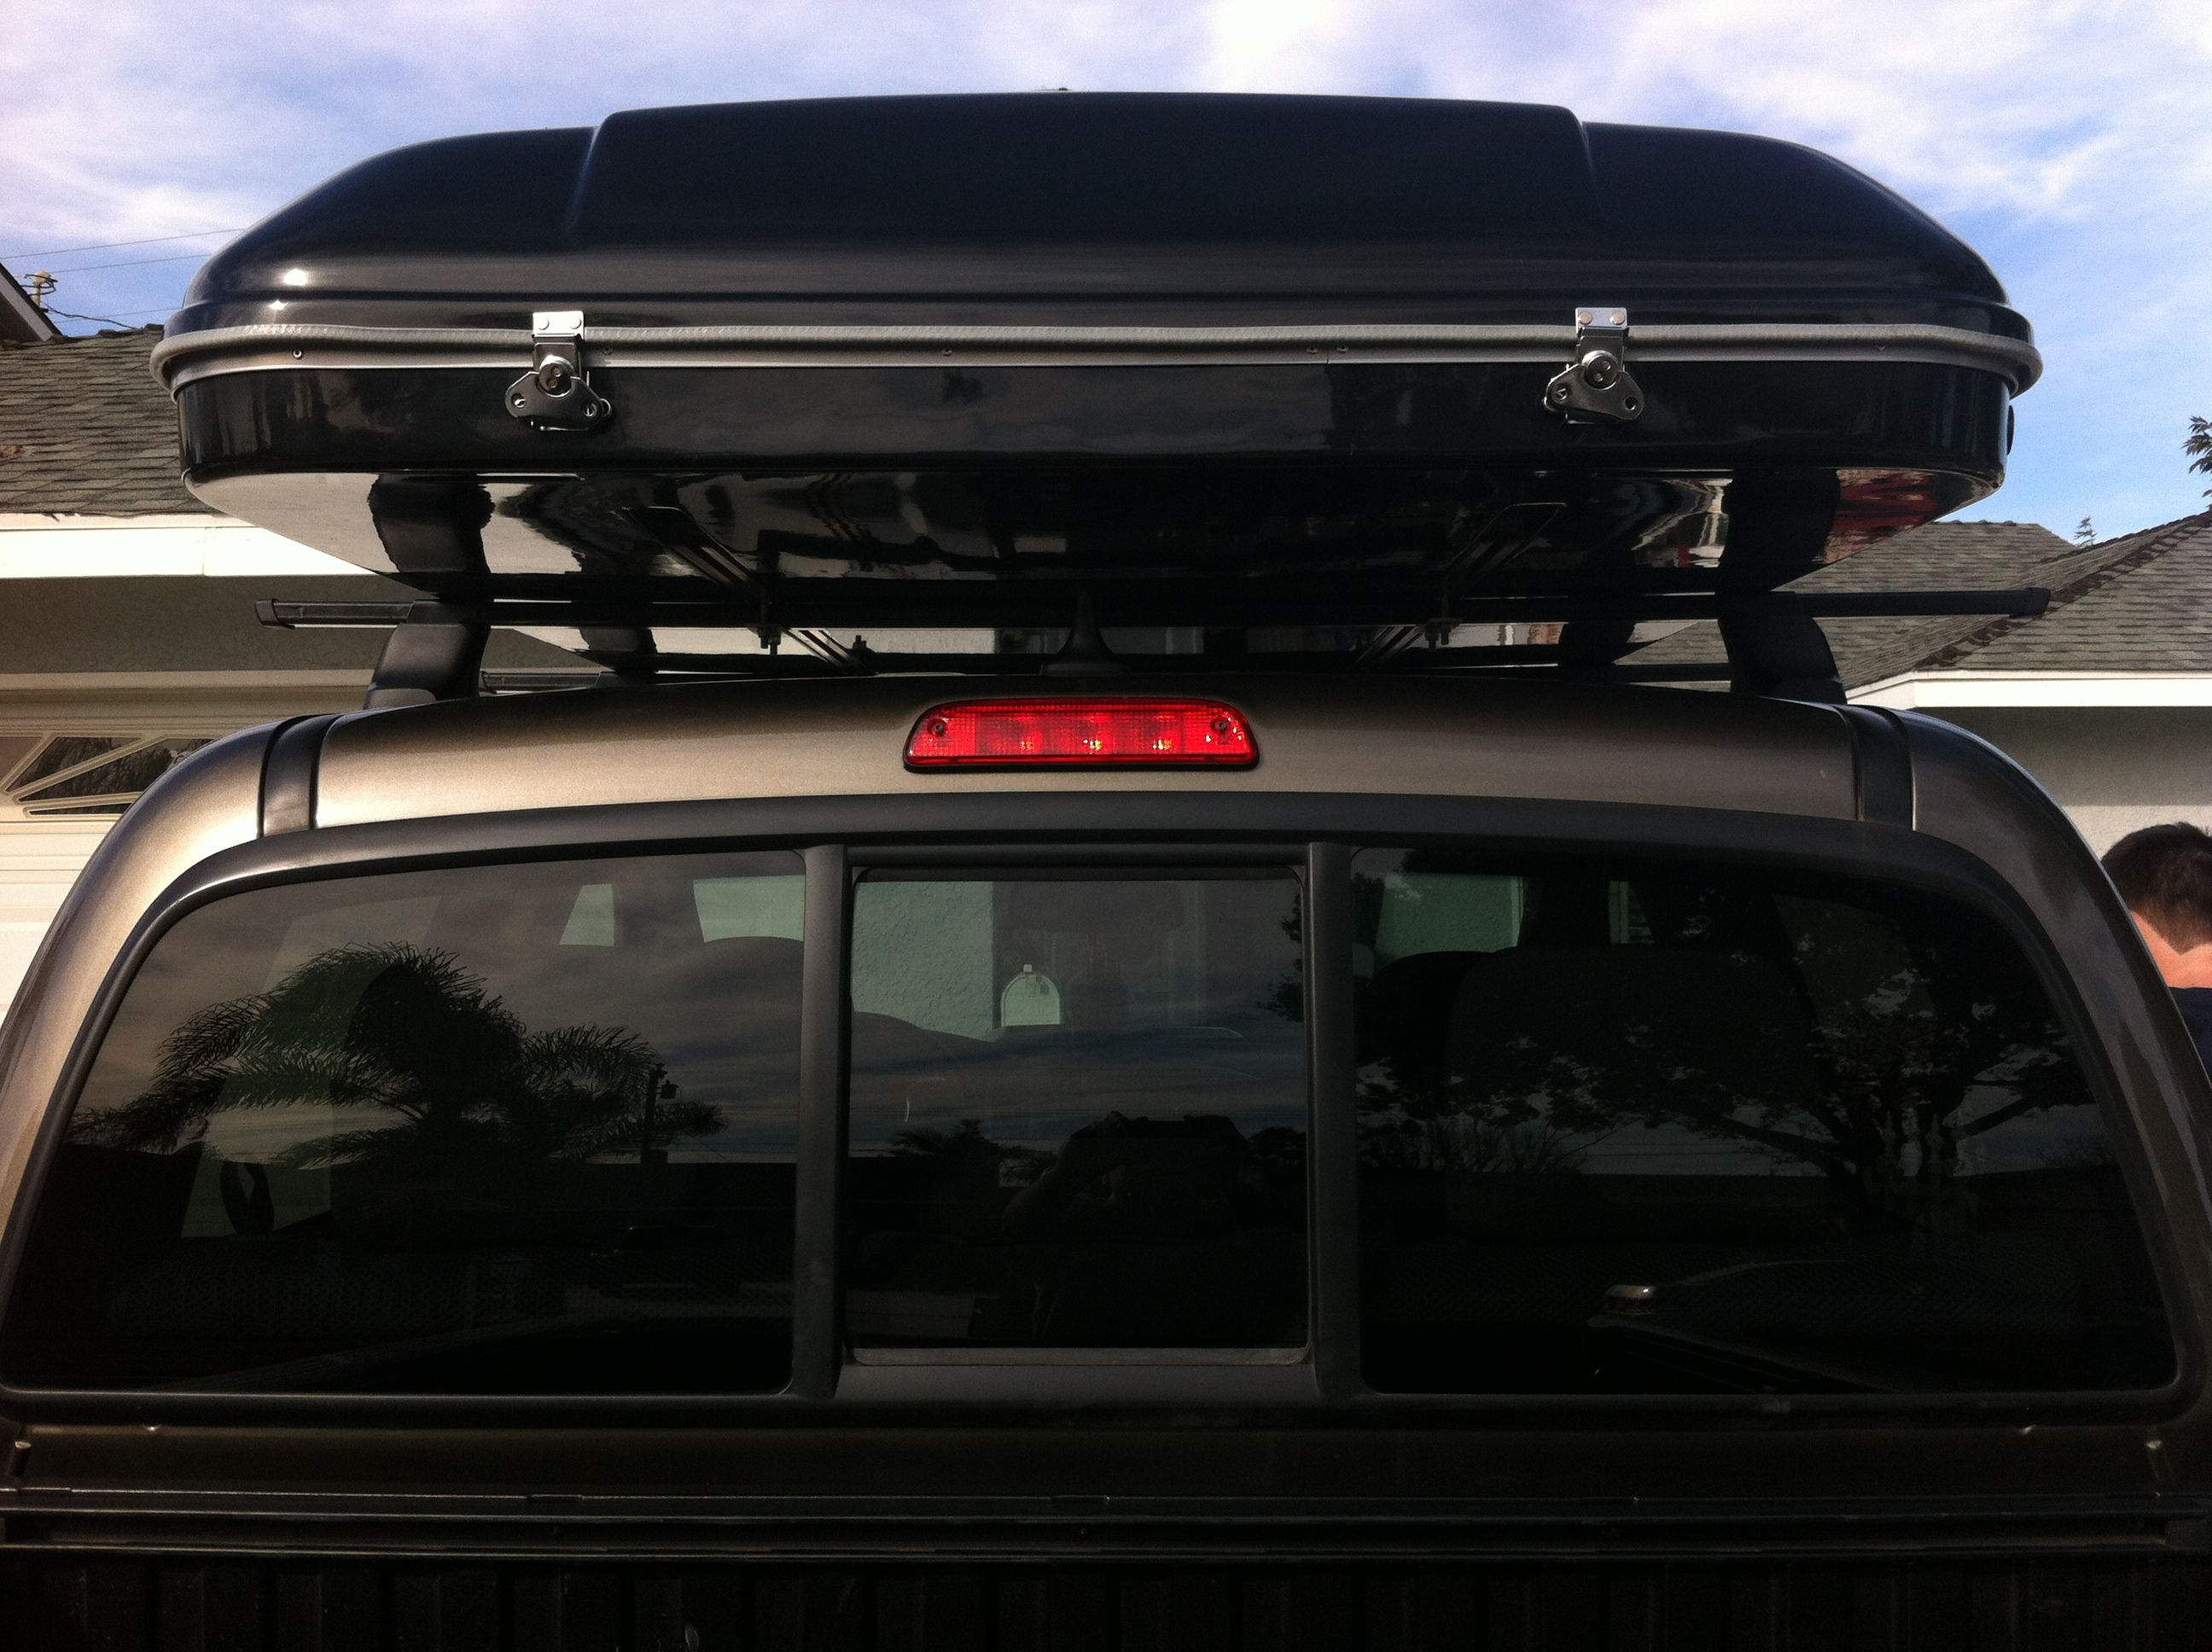 Hard Shell Roof Top Tent over the cab from the rear view .bigfoottents. & Hard Shell Roof Top Tent over the cab from the rear view www ...